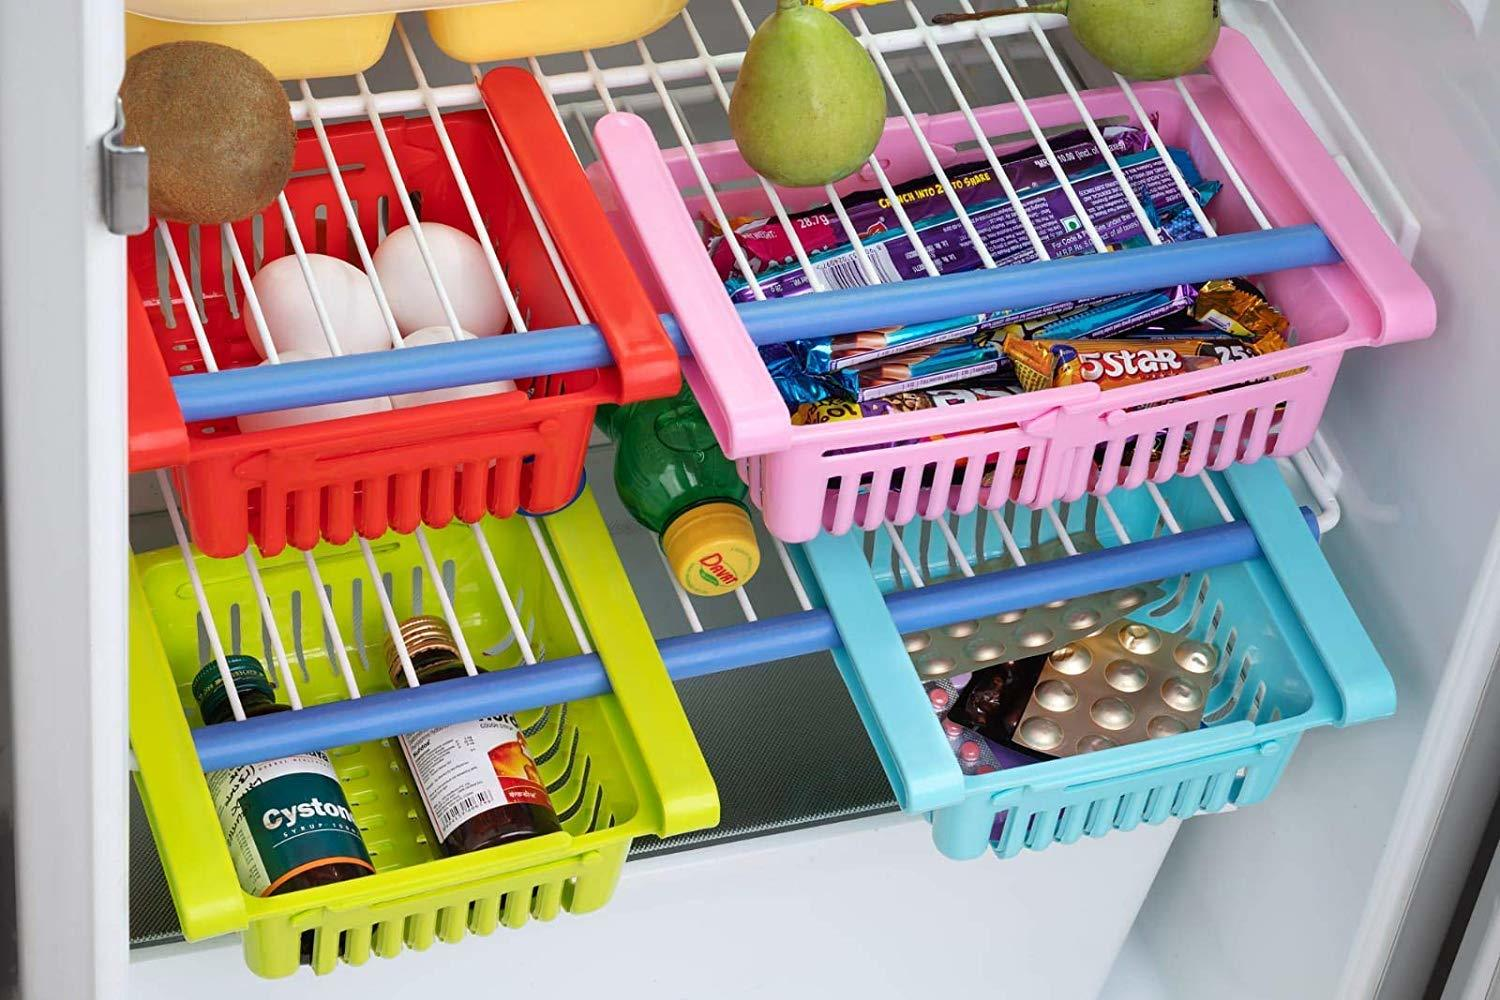 Adjustable Fridge Storage Basket Expandable Fridge Storage Rack Plastic Fridge Space Saver Food Organizer Tray (Set of 4)